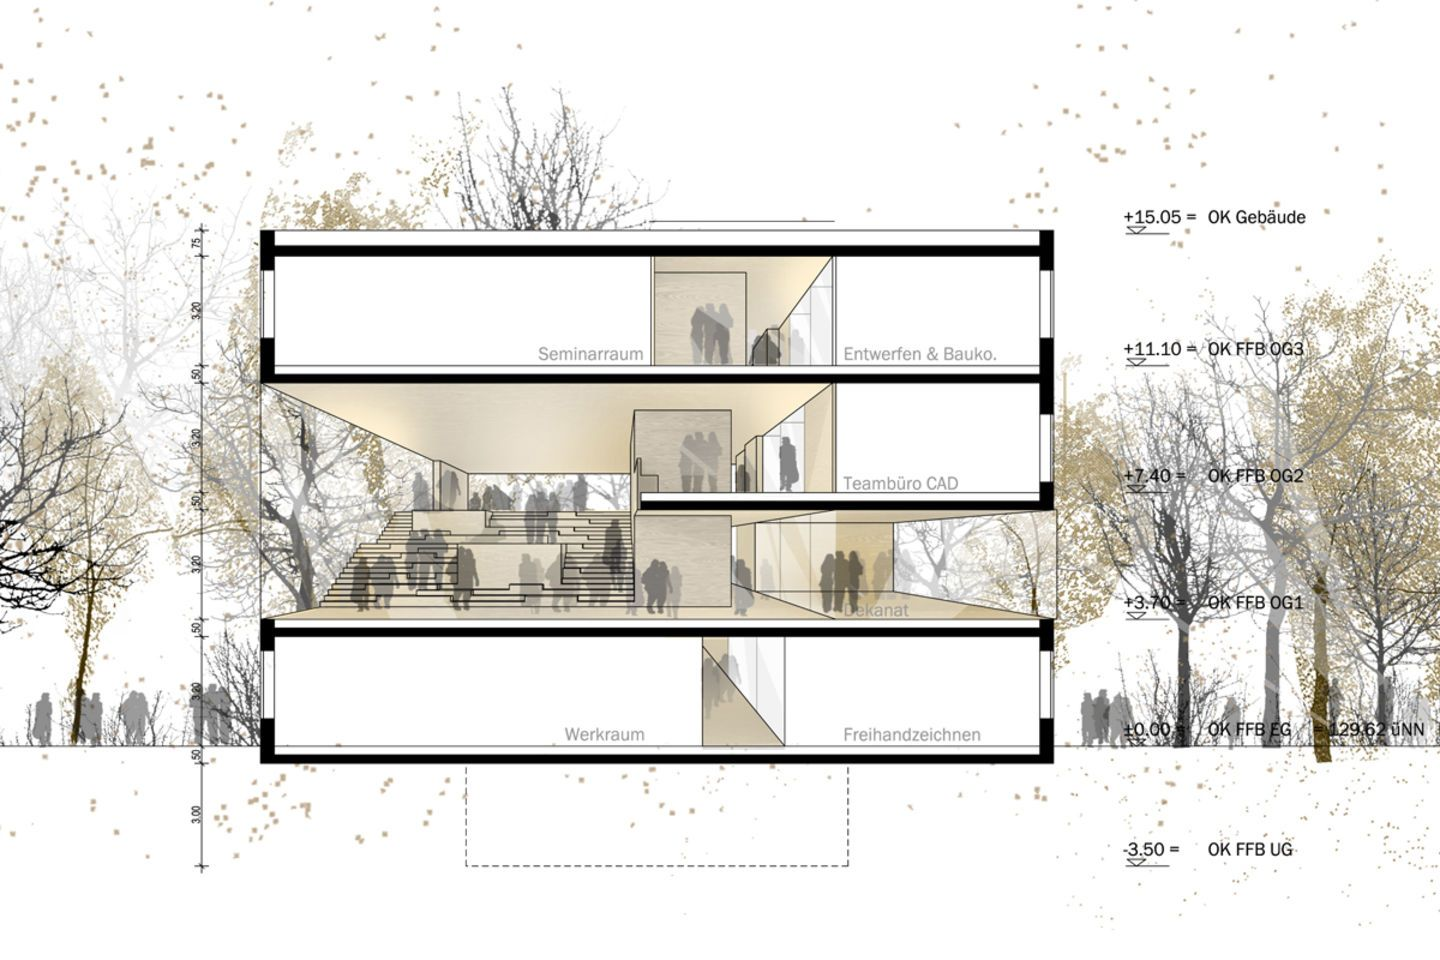 Urbania Bochum Our Concept Of The New Seminar Building For The Faculty Of